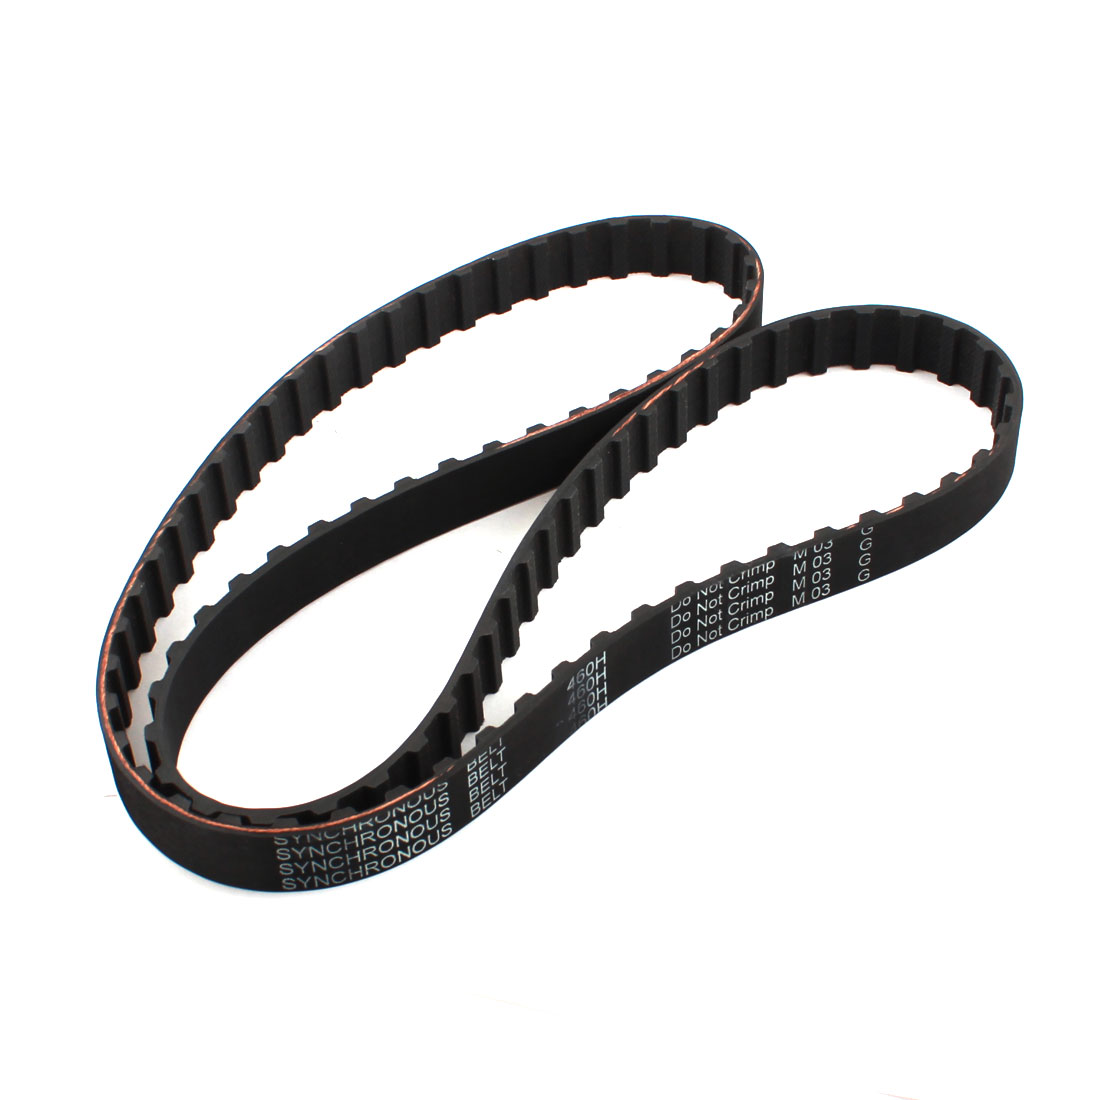 460H 075 19.1mm Width 12.7mm Pitch 92 Teeth Single Side Industrial CNC Black Groove Synchronous Timing Belt 46""